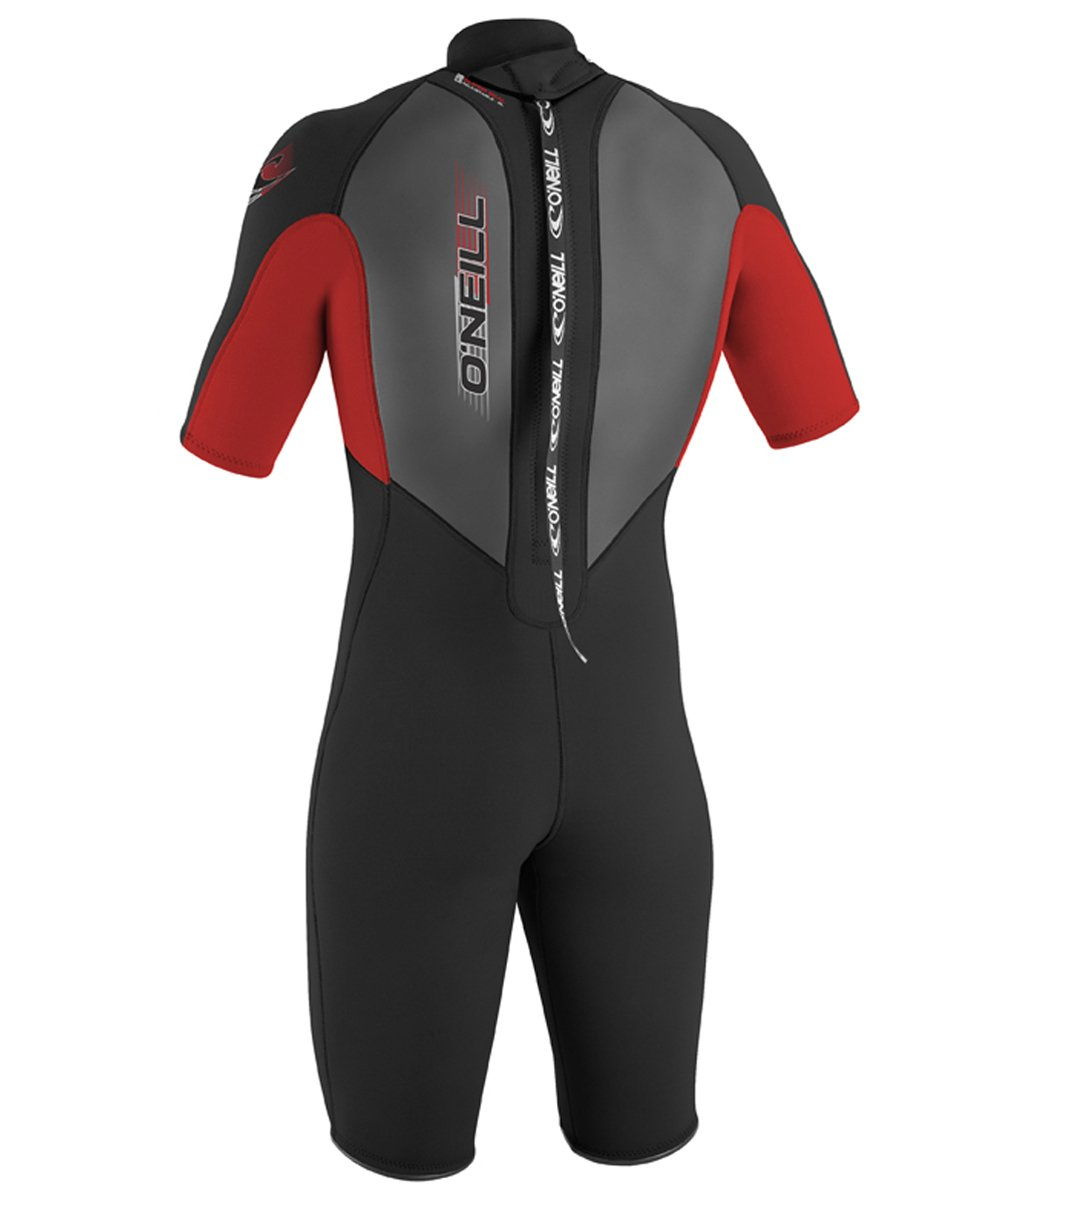 O'Neill Youth Reactor 2mm Back Zip Spring Wetsuit, Black/Red/Black, 4 by O'Neill Wetsuits (Image #2)